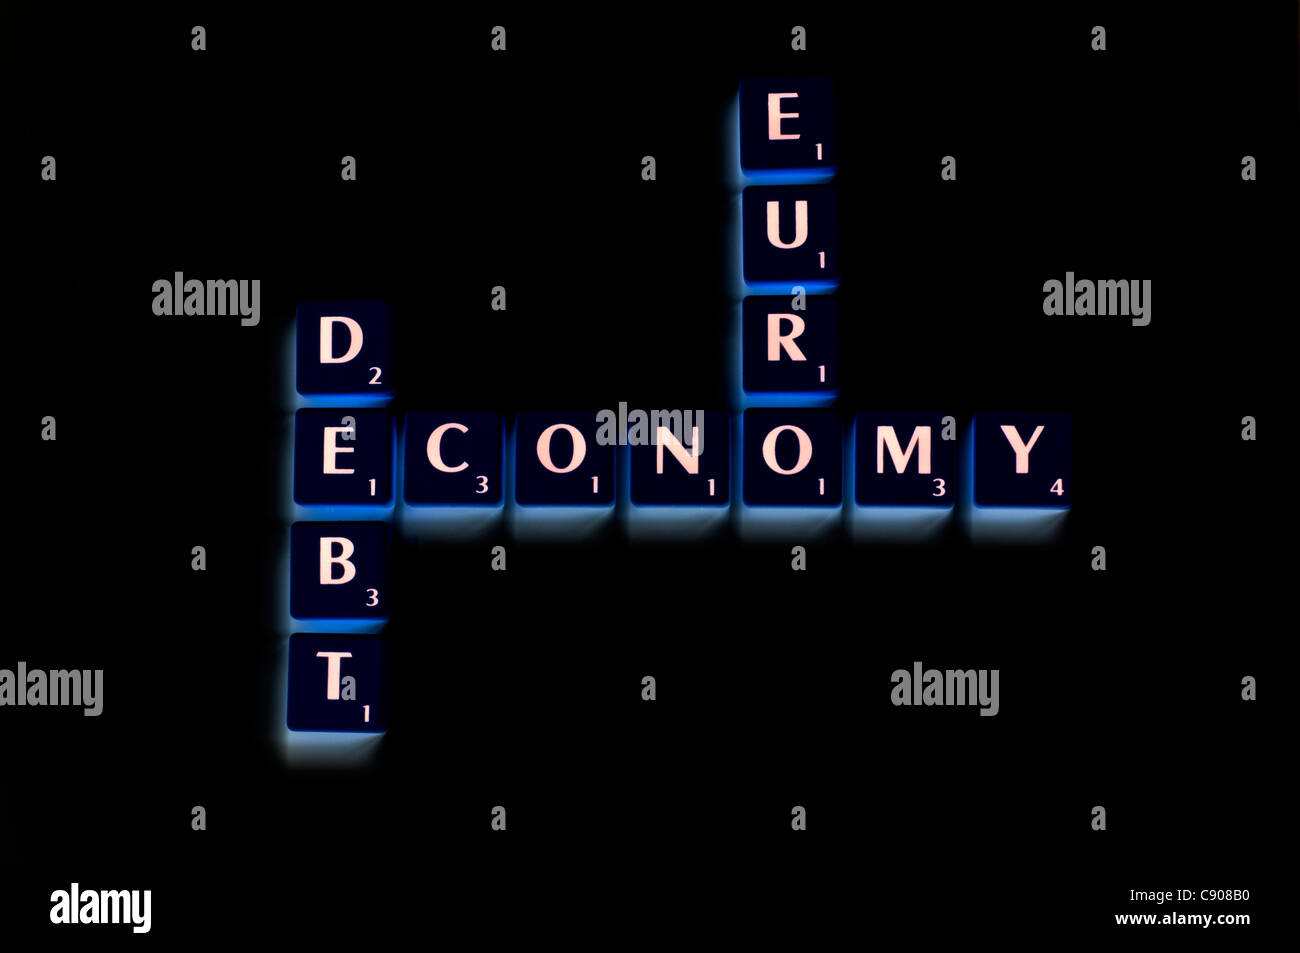 Inverted Scrabble tiles spelling out the words euro, economy and debt - Stock Image